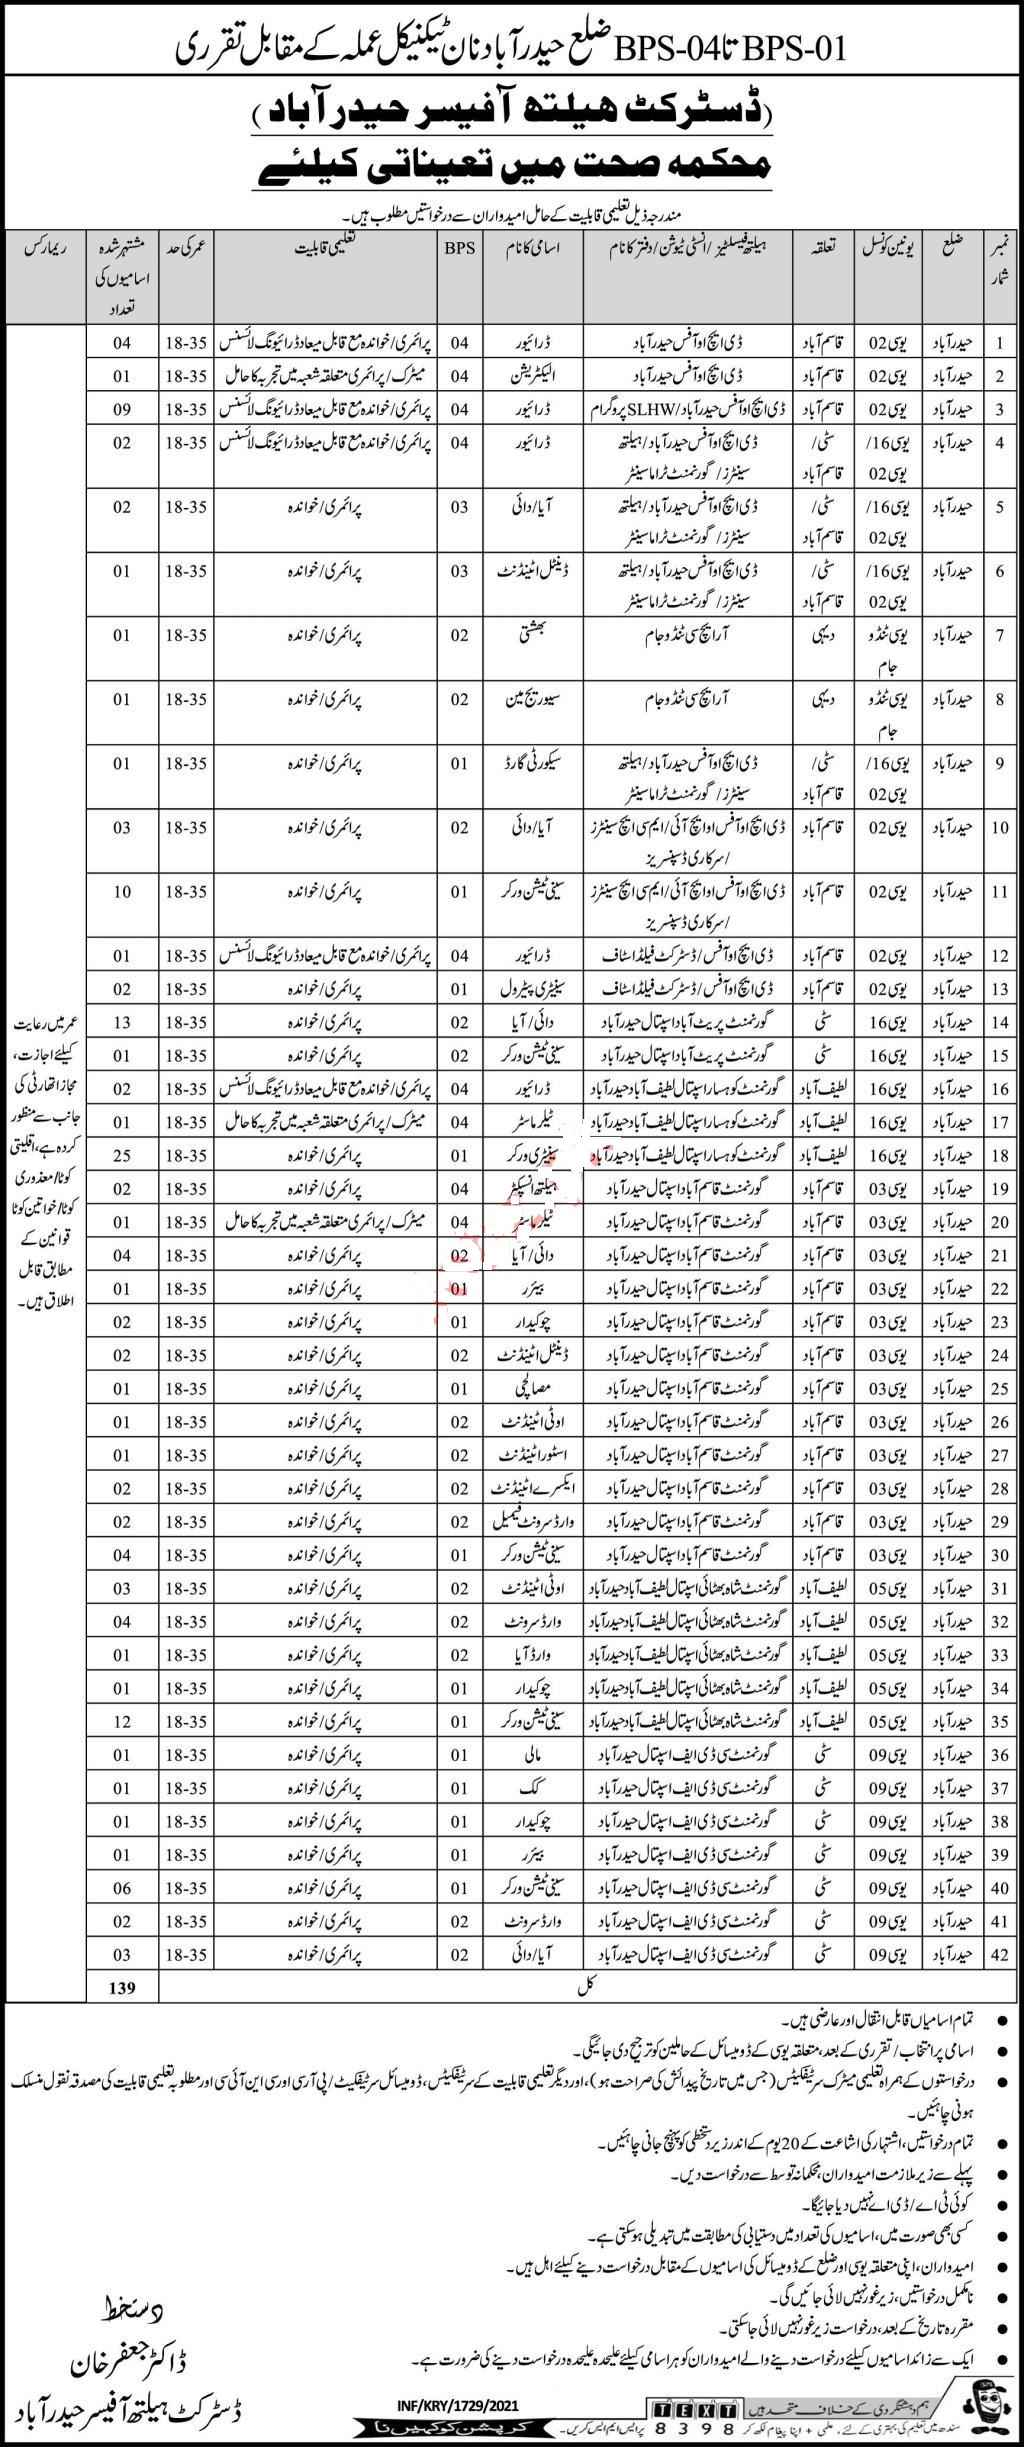 139 Posts in Health Department Hyderabad Jobs 2021 for Driver, Electrician, Aya, Dai, Dental Attendant, Bashthi, Waterman, Sewerage Man, Security Guard, Sanitation Worker, OT Attendant, Store Attendant, X Ray Attendant and many more